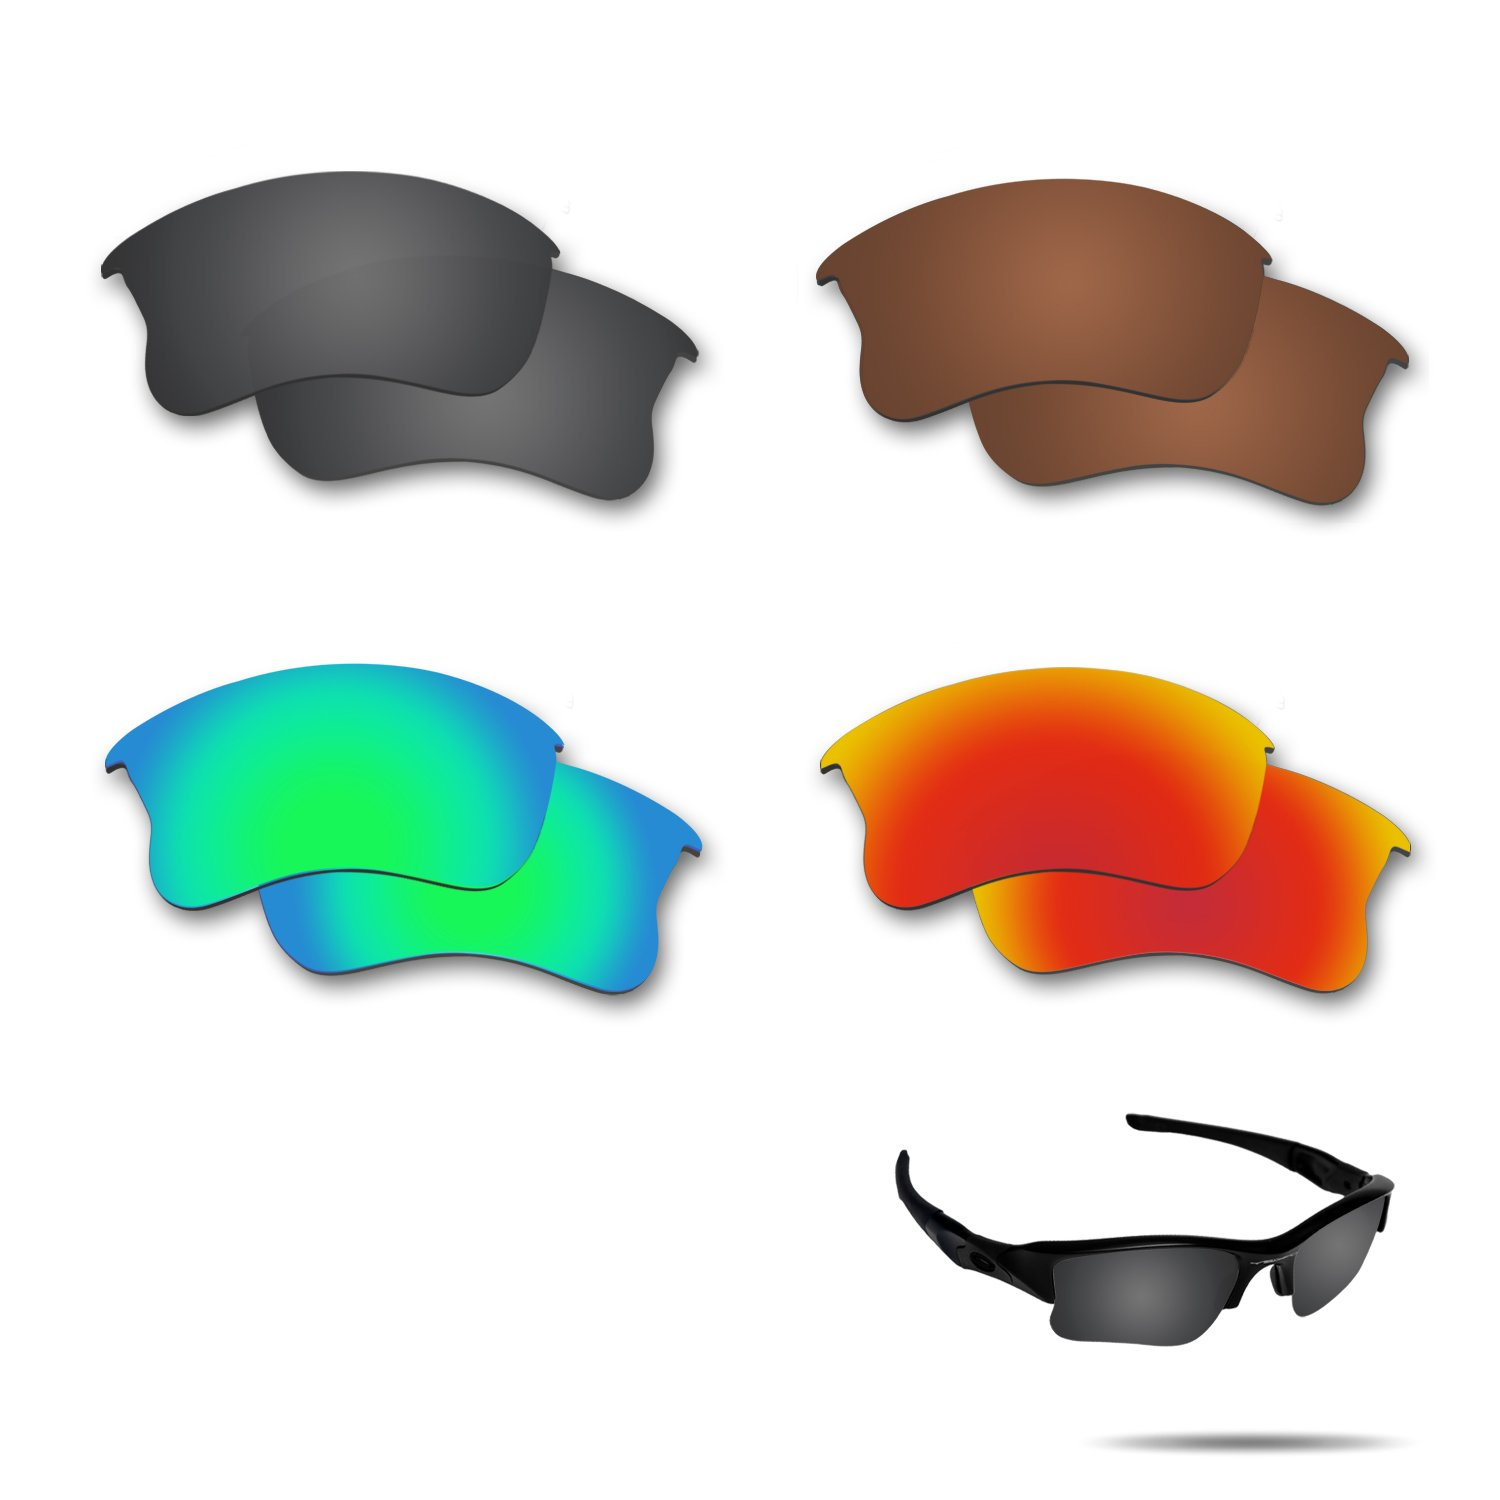 Fiskr Anti-saltwater Polarized Replacement Lenses for Oakley Flak Jacket XLJ Sunglasses 4 Pairs by Fiskr